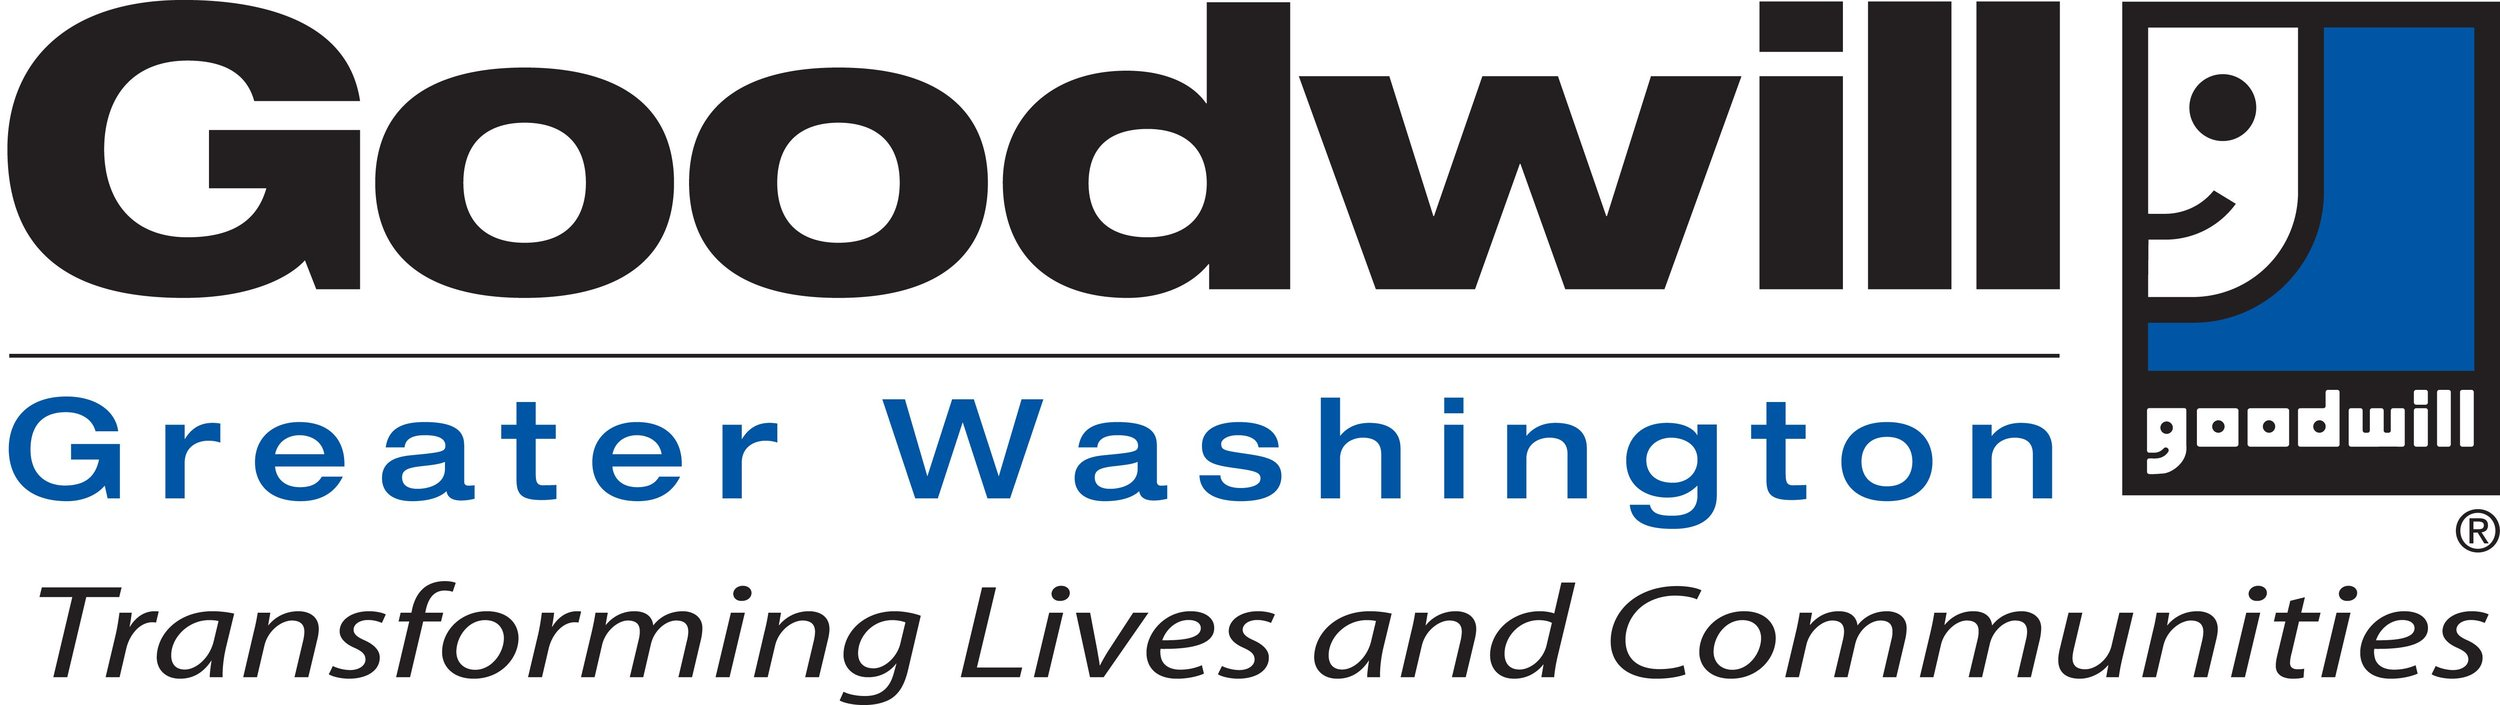 goodwill_greater_washington_logo.jpeg